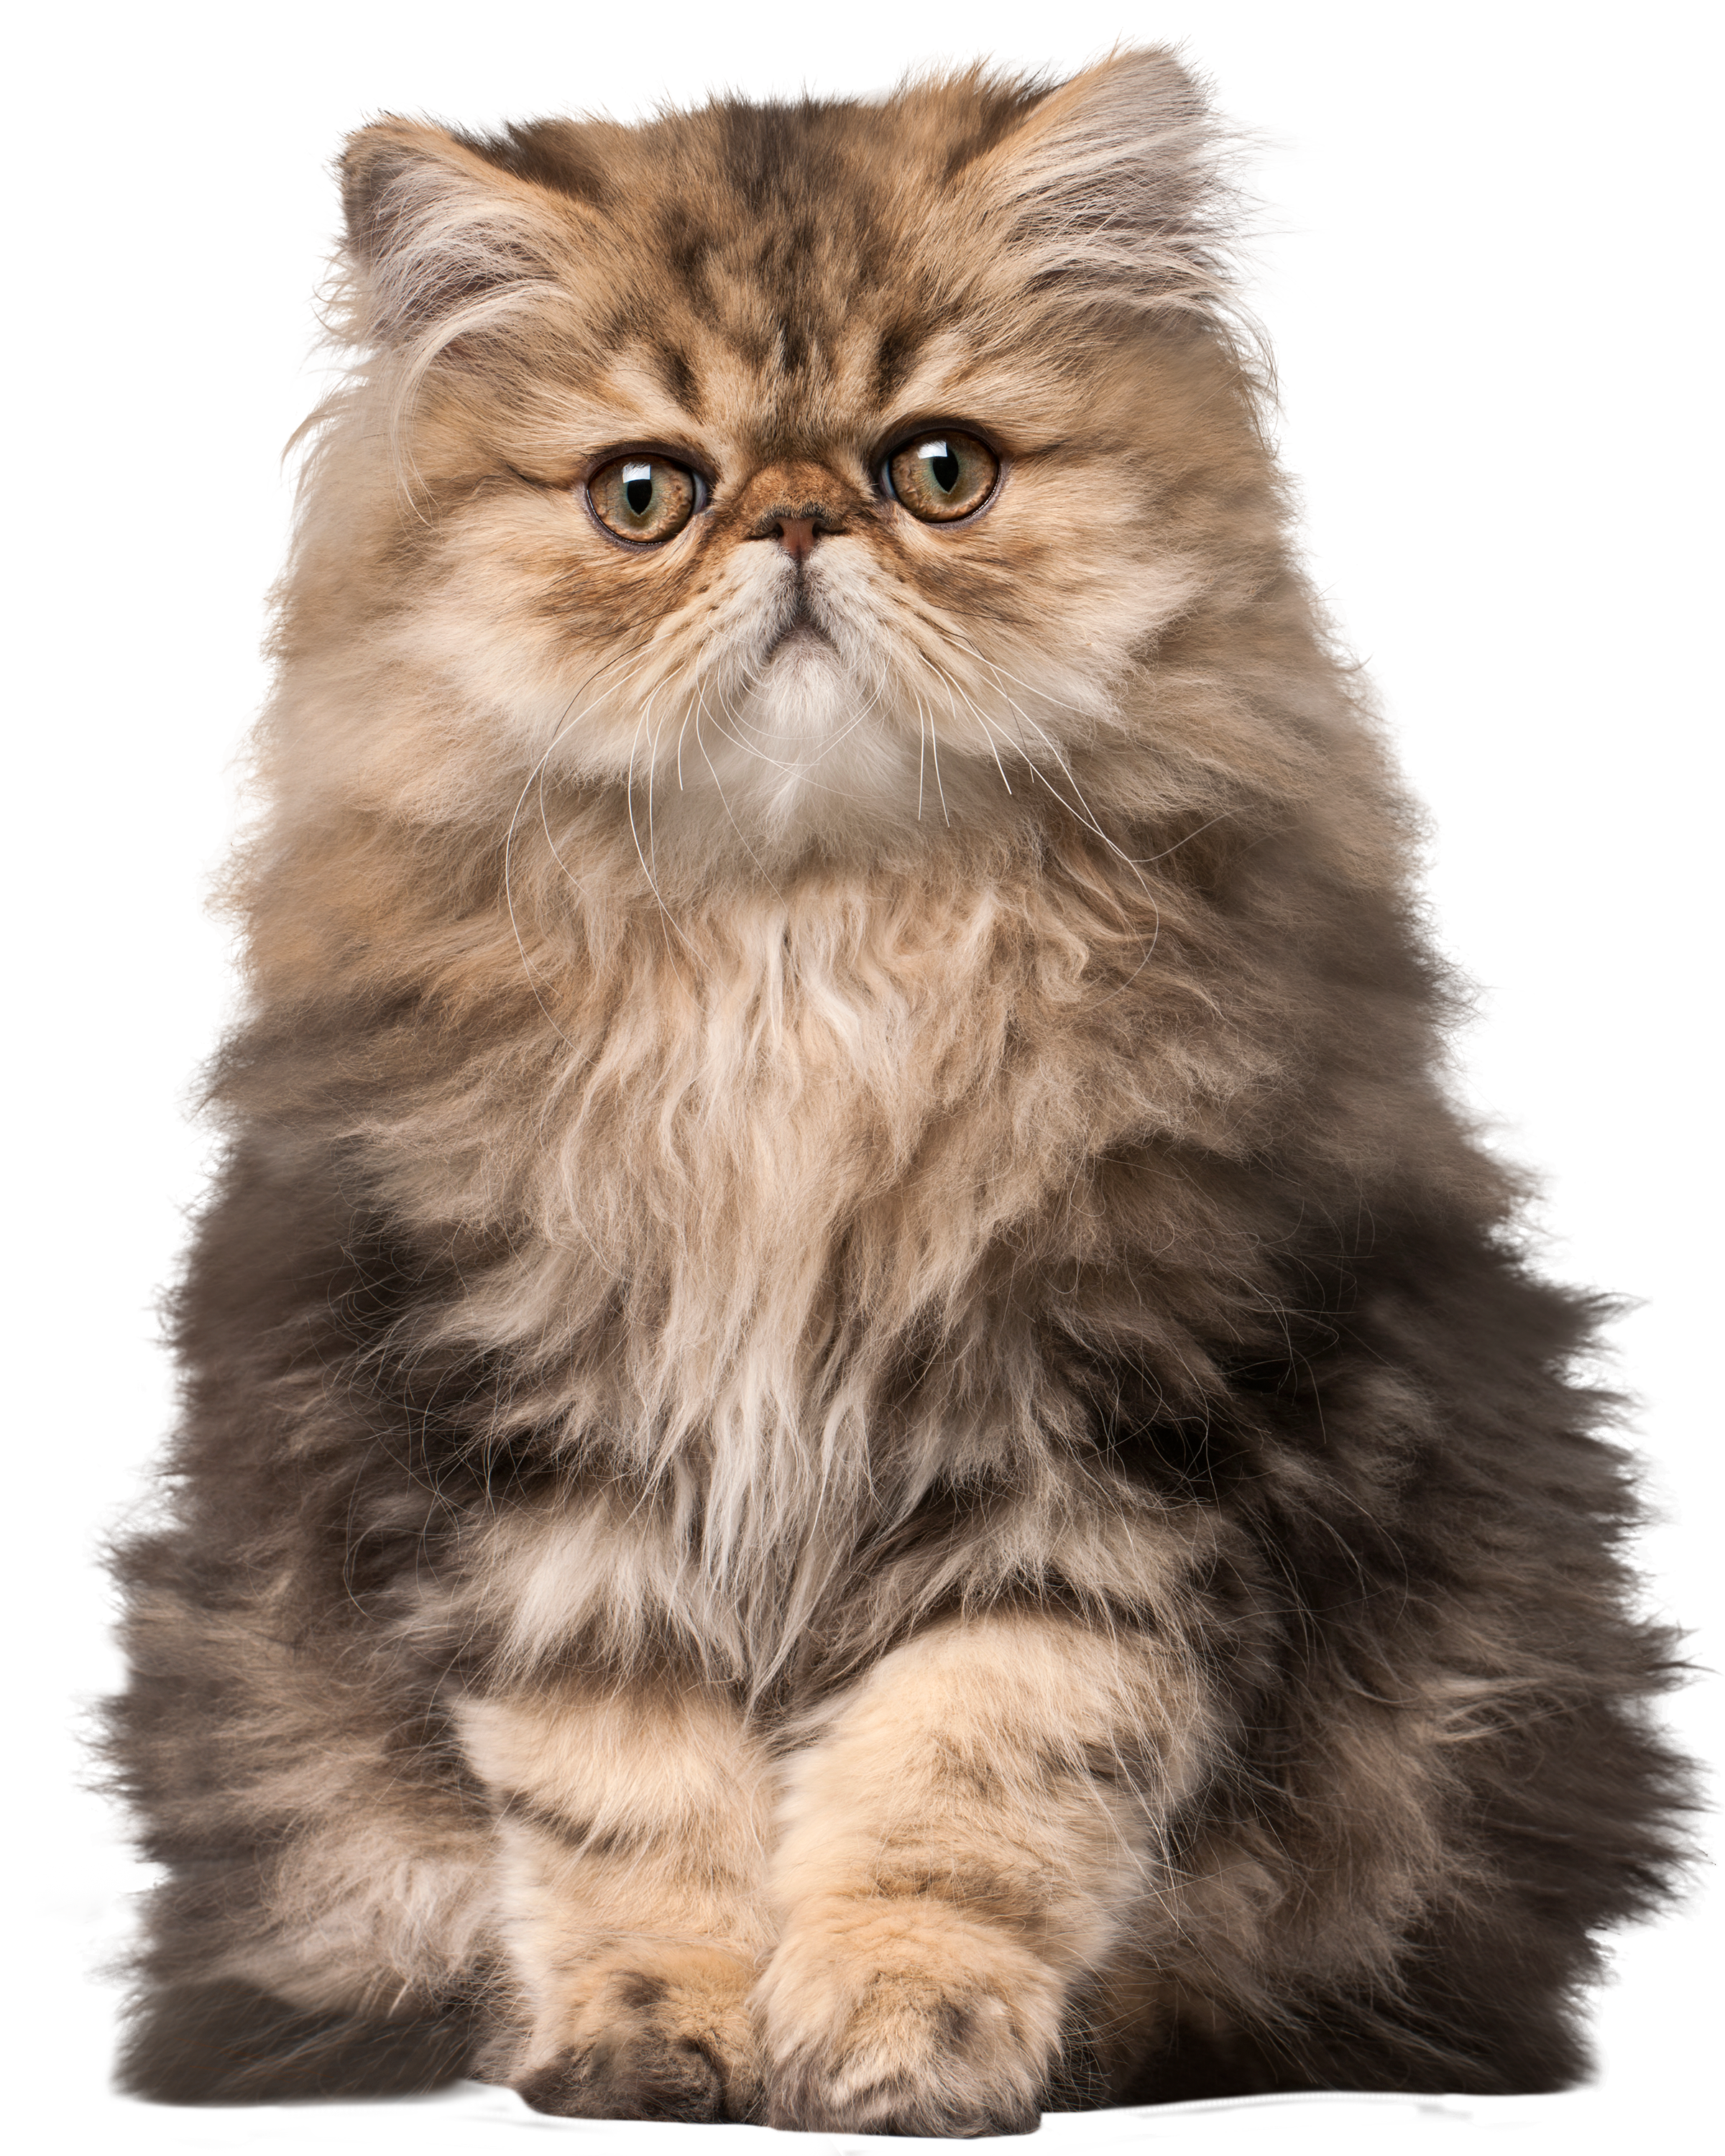 Animals png images. Cat clip art best